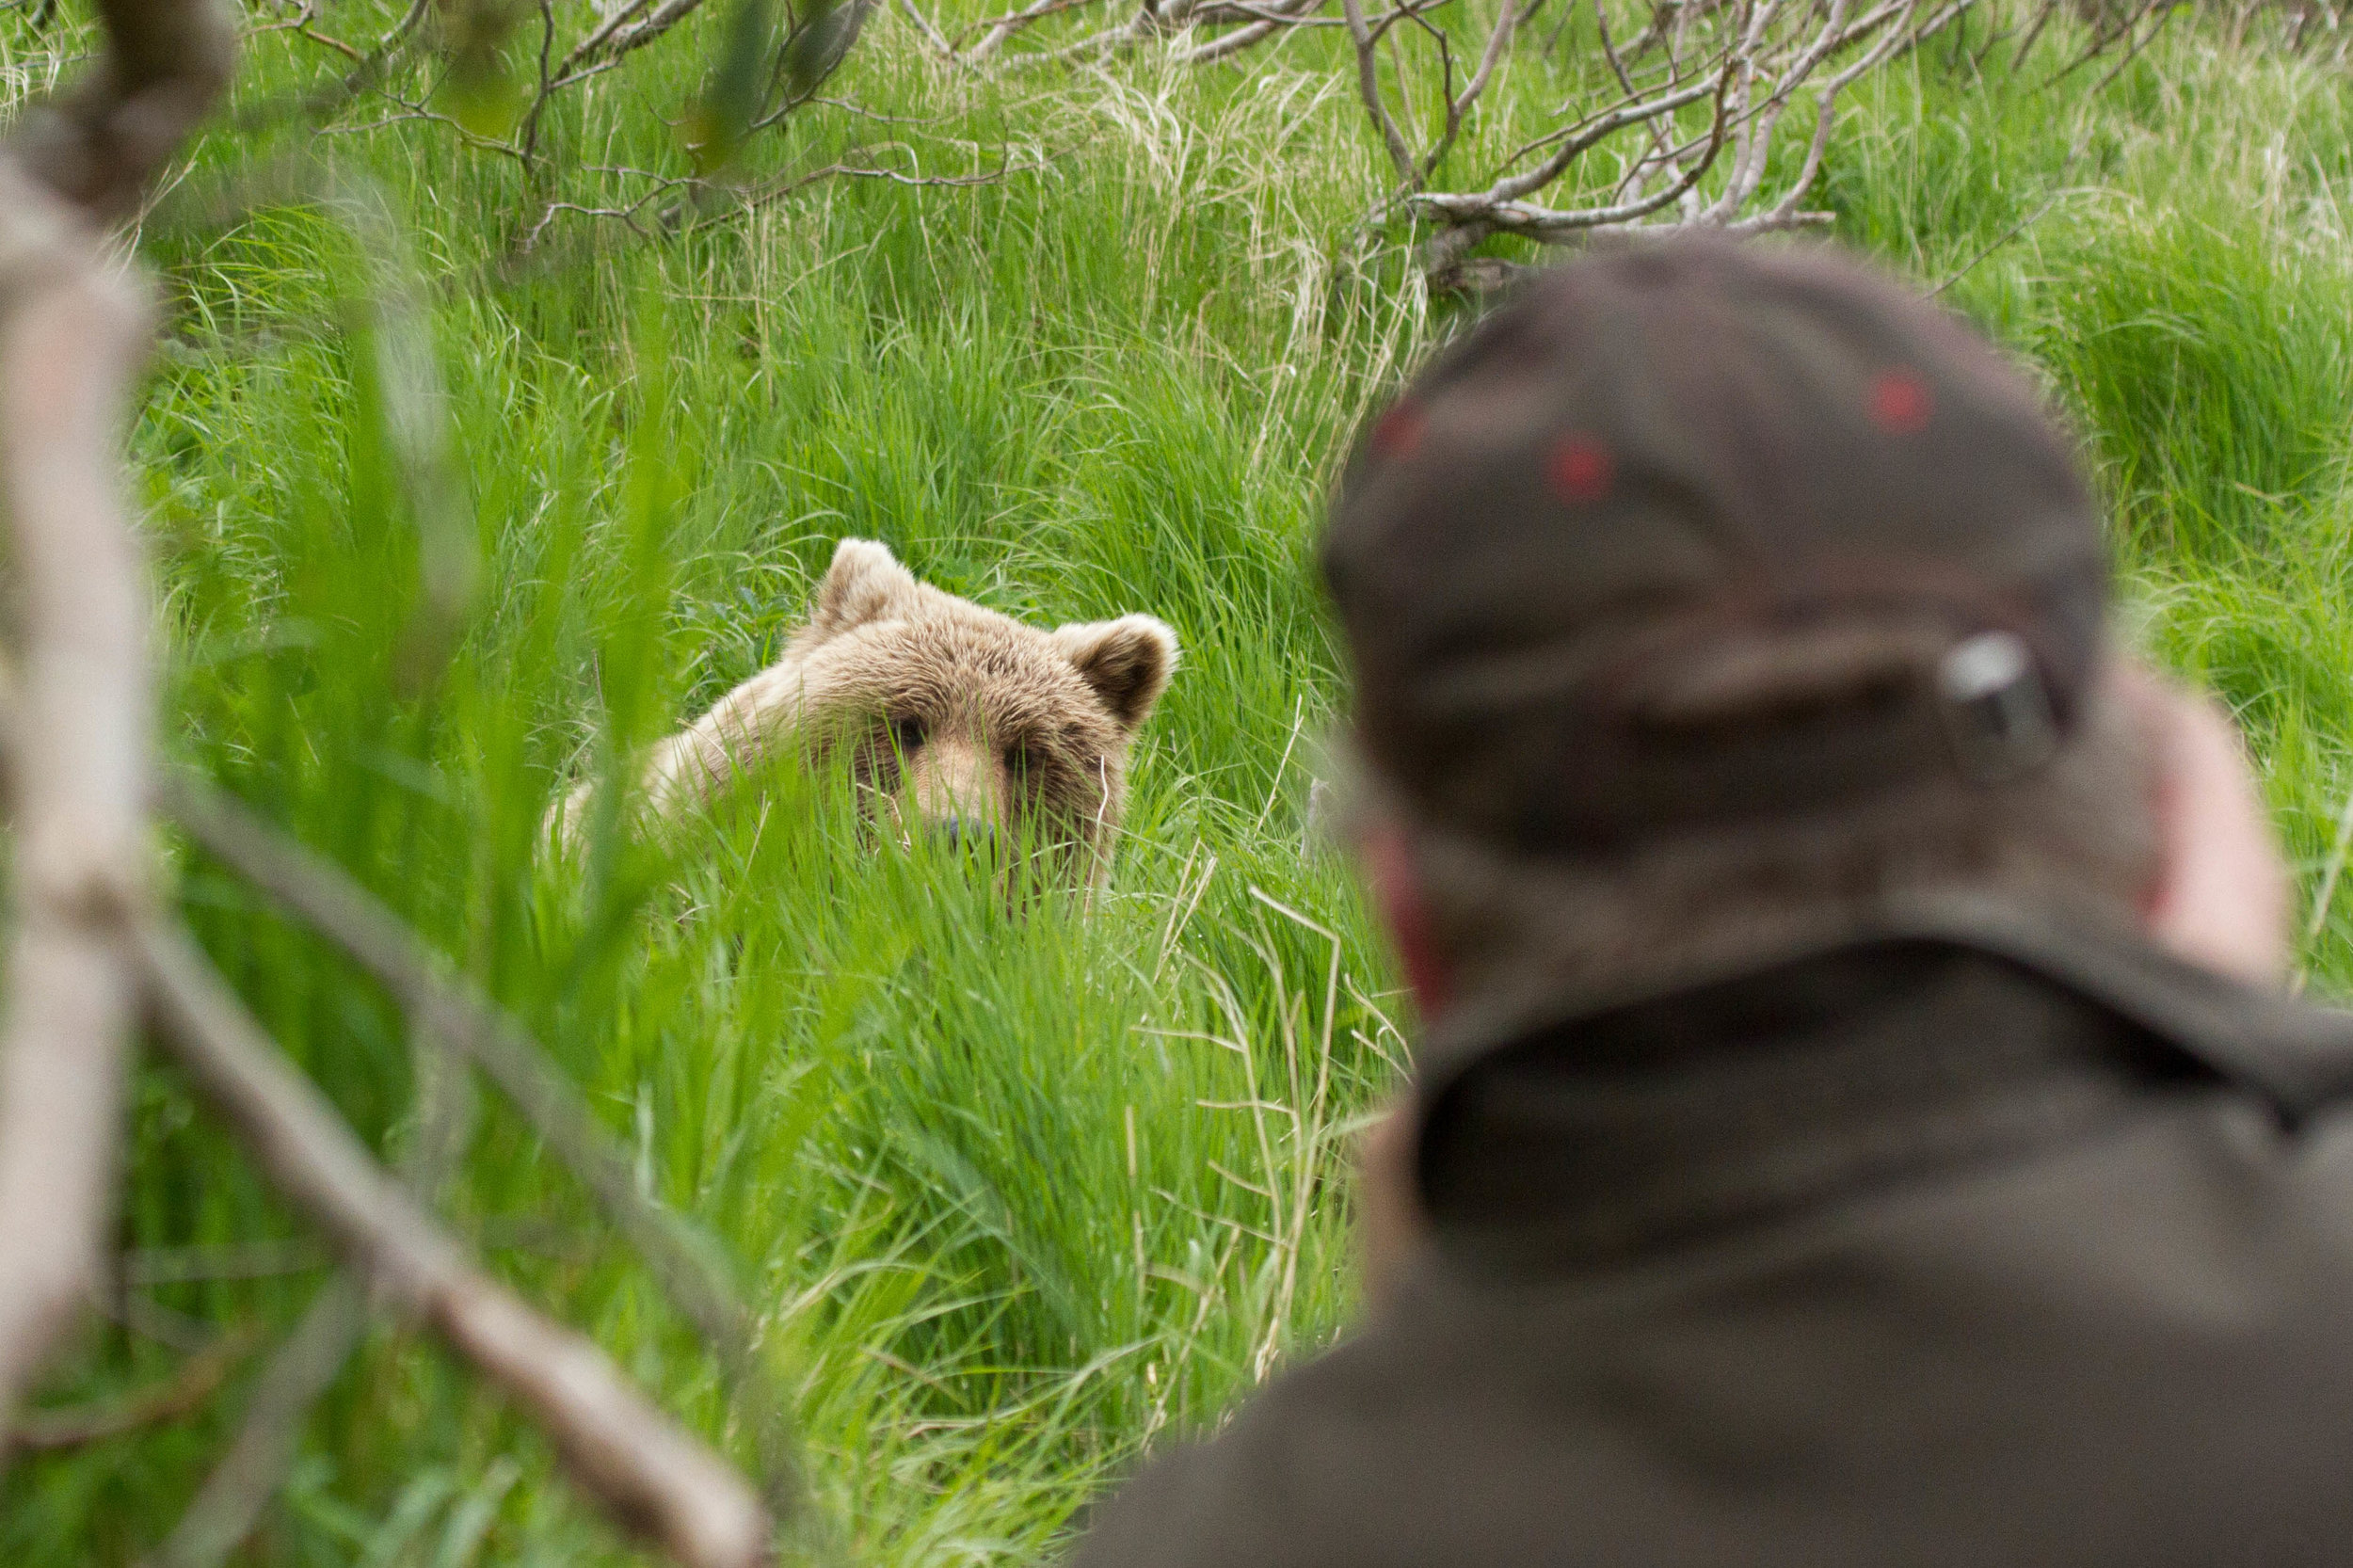 June - a small bear pops out of the grass near a group of bear viewers